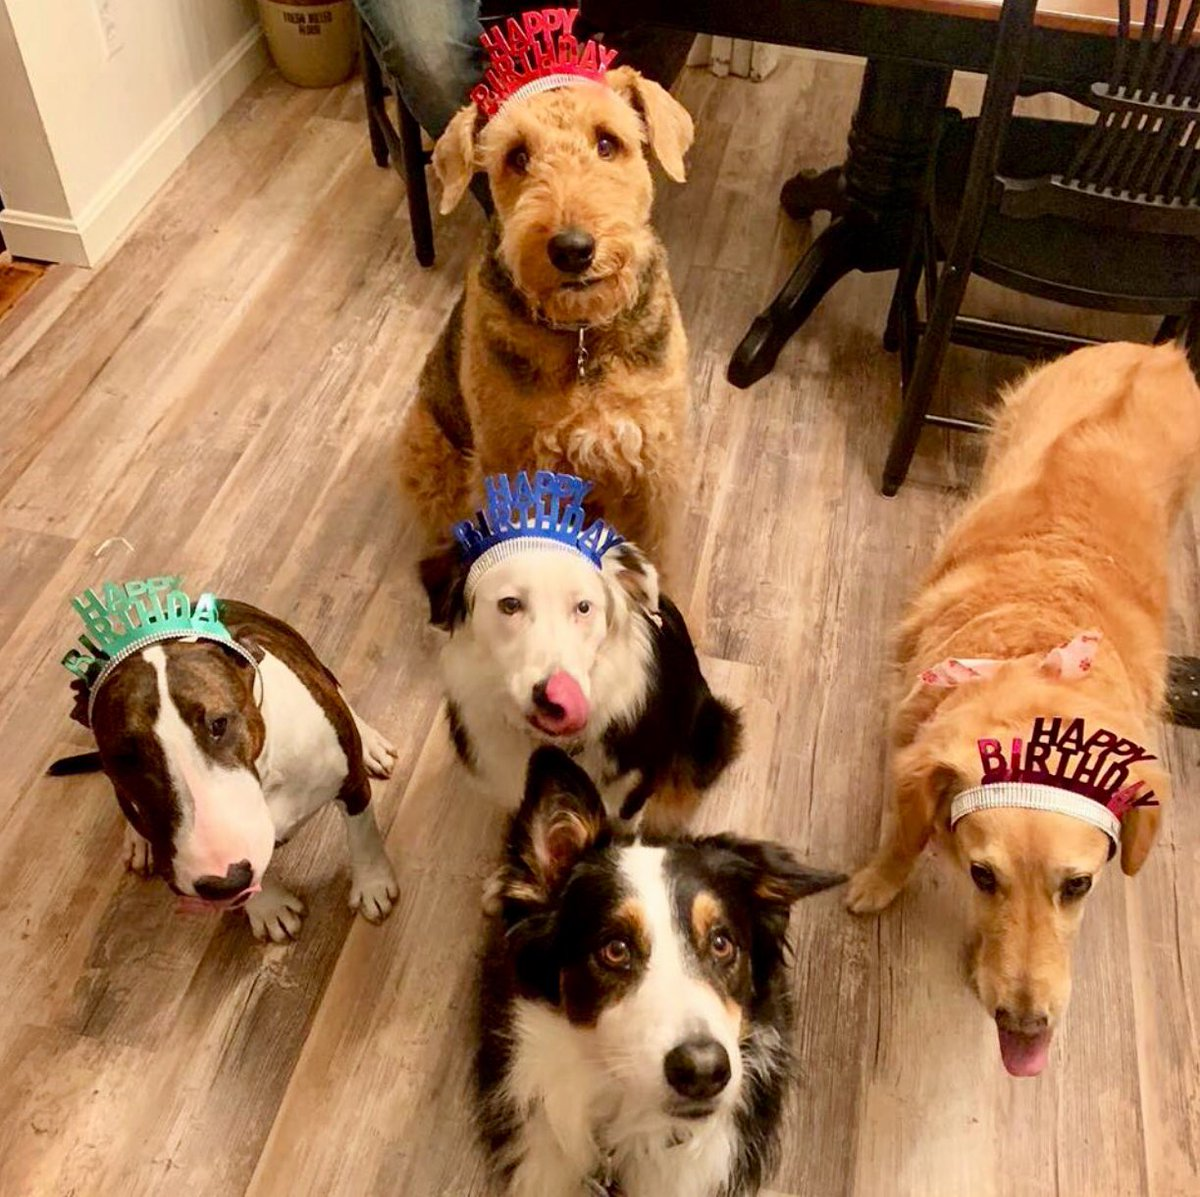 Phoebes 1st year Birthday party ! This Motley Crew did a shot of Crown Royal to mark the occasion! #BullTerrier <br>http://pic.twitter.com/K3rWb552qv